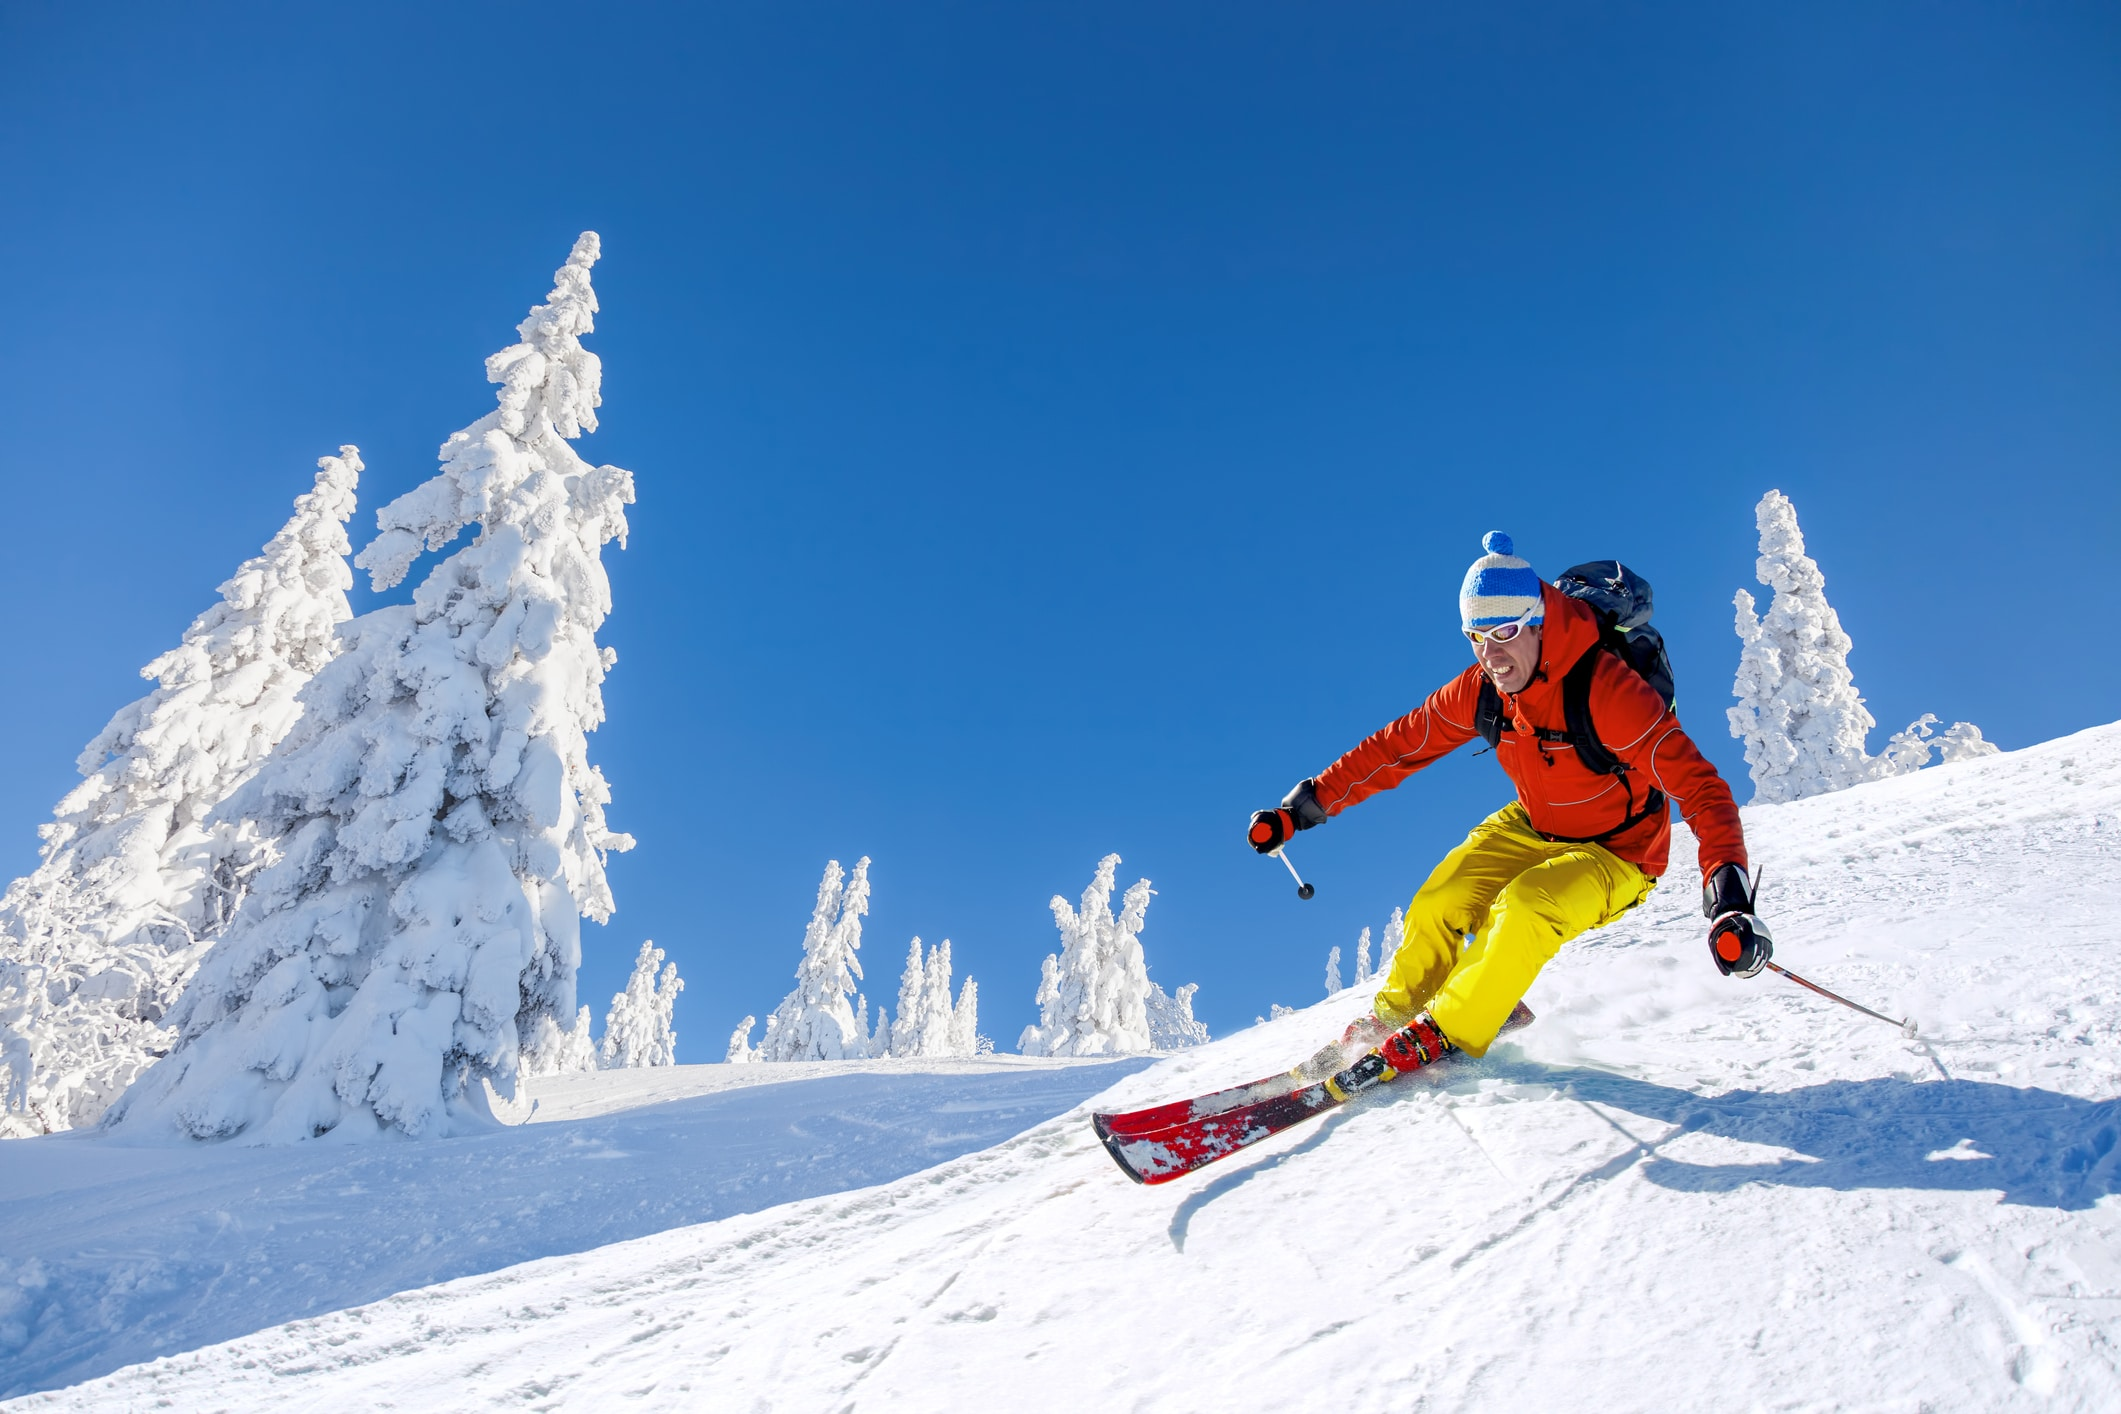 Downhill skiier on smooth white slopes.